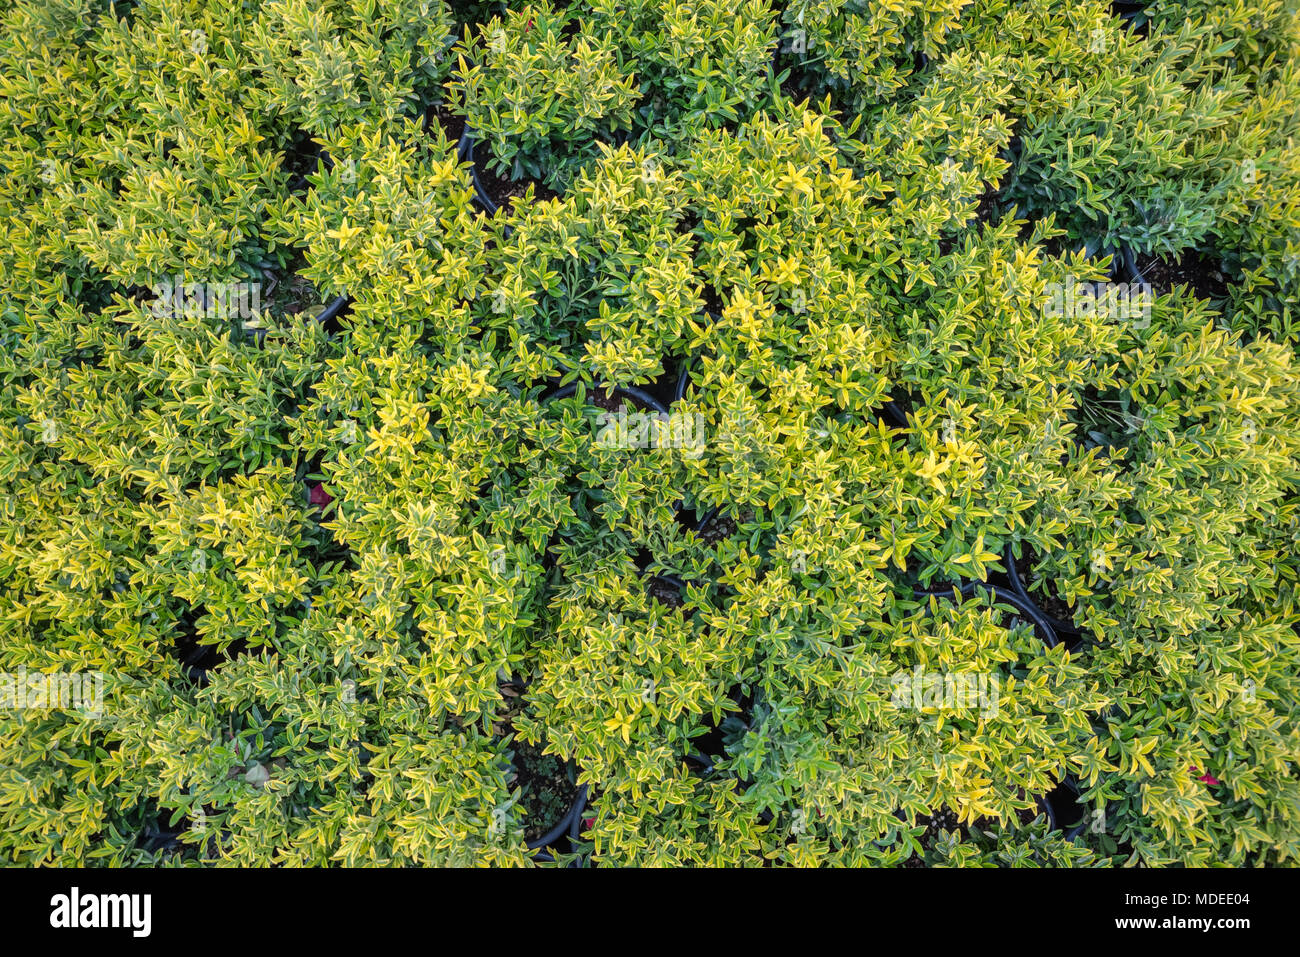 Fortune spindle (Euonymus fortunei) in garden. Detail of emerald golden leaves of winter creeper.Hedge of the Golden spindle tree. - Stock Image